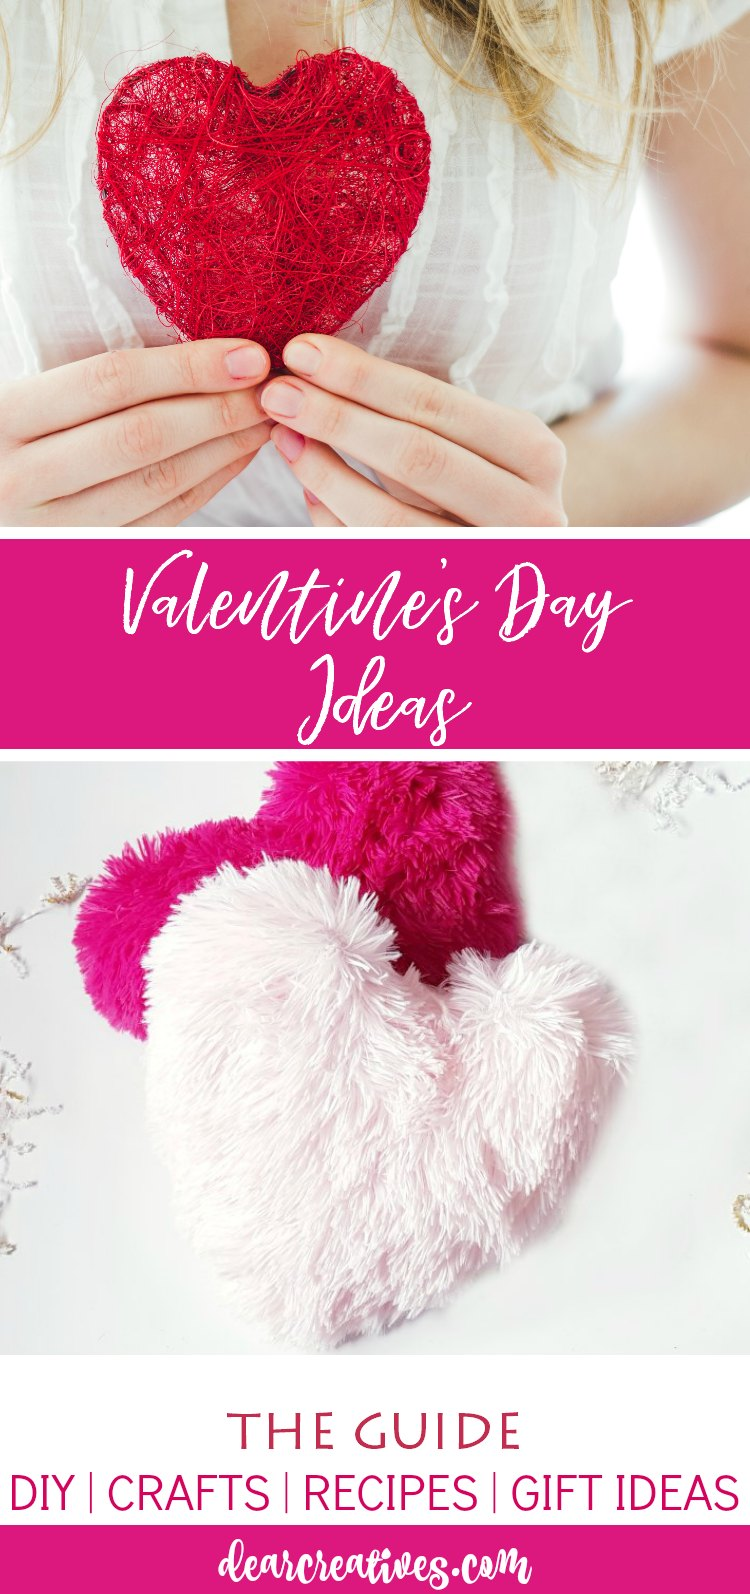 Valentines Day Ideas DIY, crafts, recipes, gift ideas, and more. DearCreatives.com